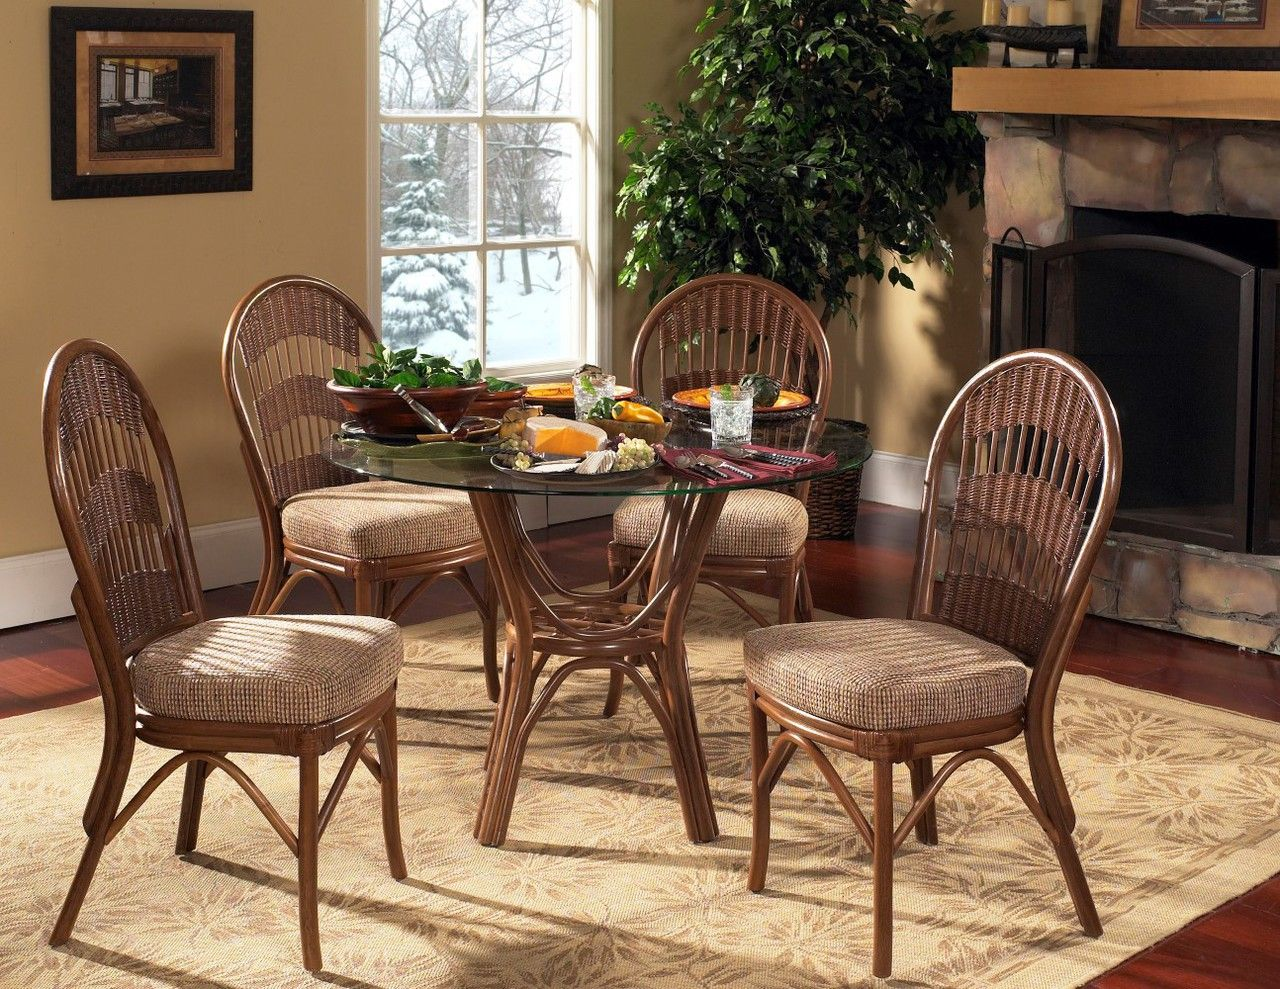 Modern wicker south sea rattan bermuda indoor dining room set with side chairs 1330 00